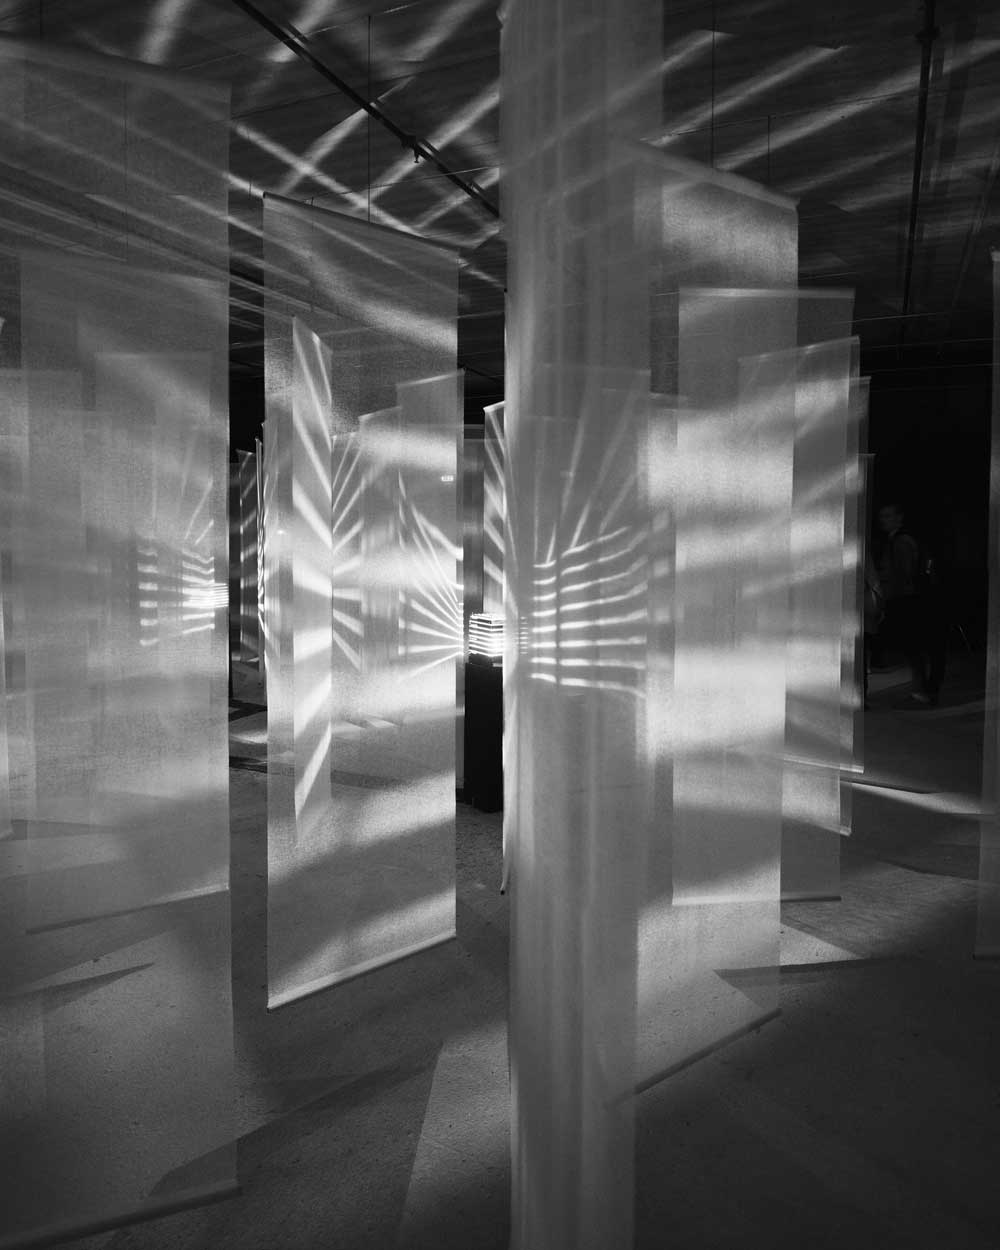 "Julio Le Parc, Luz en vibración (Vibrating Light), 1968, installation, 89"" x 158"" x 158."" Photo: Martin Argyroglo. Courtesy Atelier Le Parc and Lélia Mordoch Gallery."